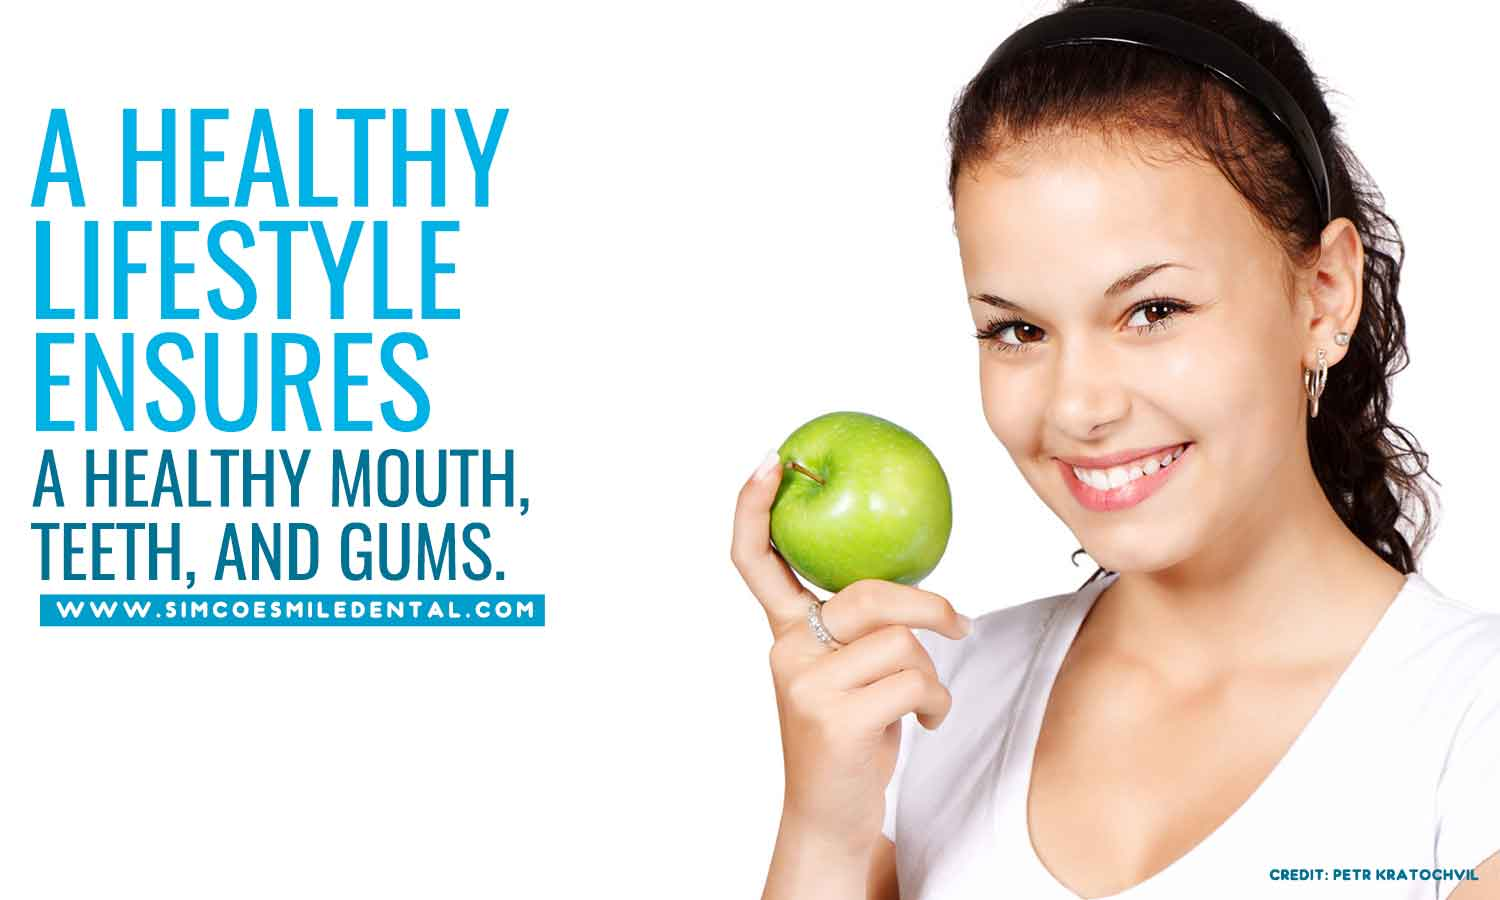 A-healthy-lifestyle-ensures-a-healthy-mouth-teeth-and-gums How A Healthy Lifestyle Can Preserve Your Oral Health